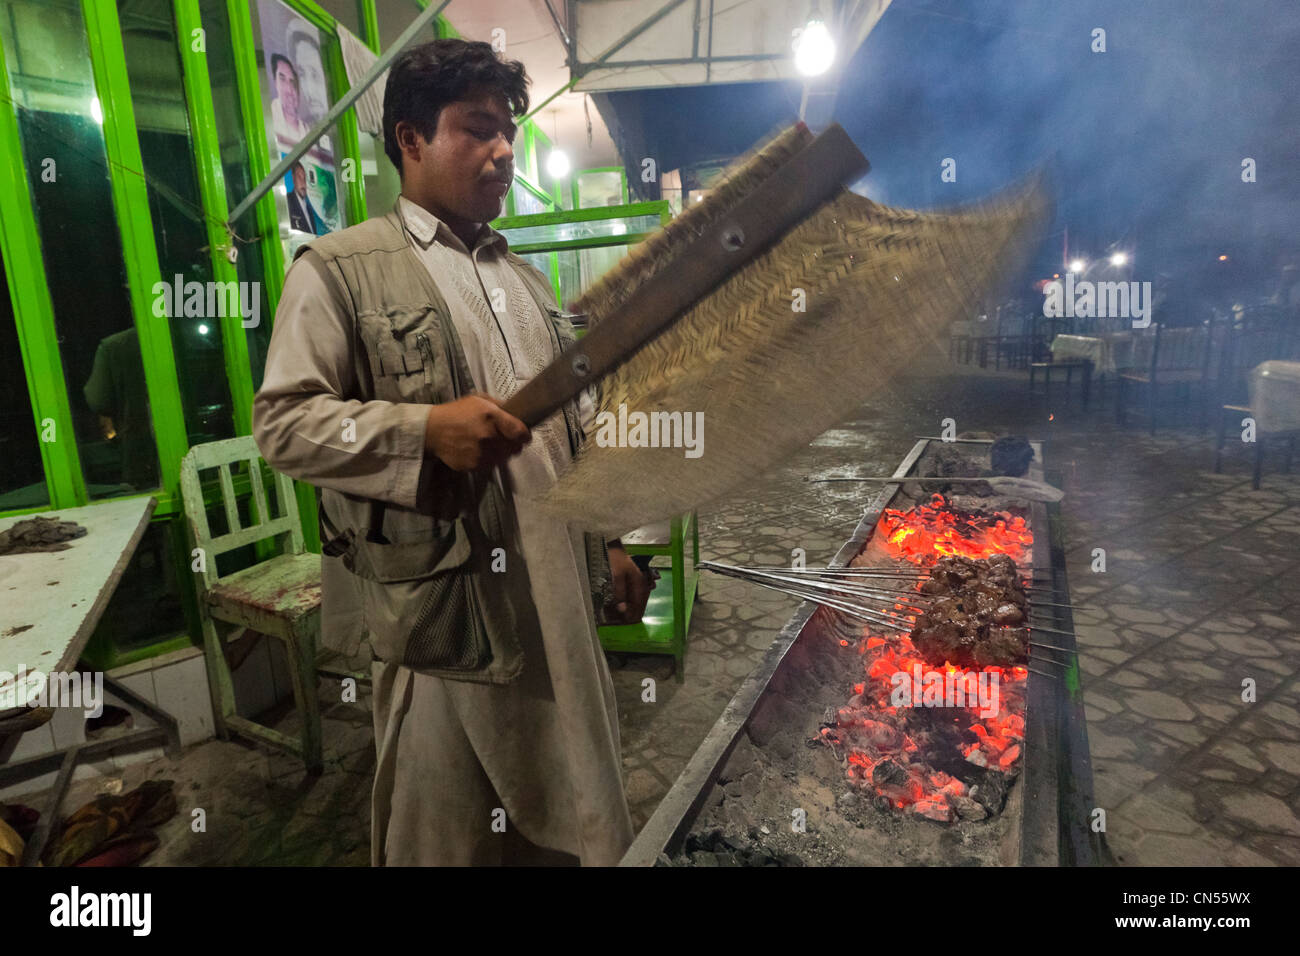 Afghanistan, Balkh province, Mazar-i-Sharif, Chaikhana restaurant, man preparing mutton skewers (shashlik) - Stock Image